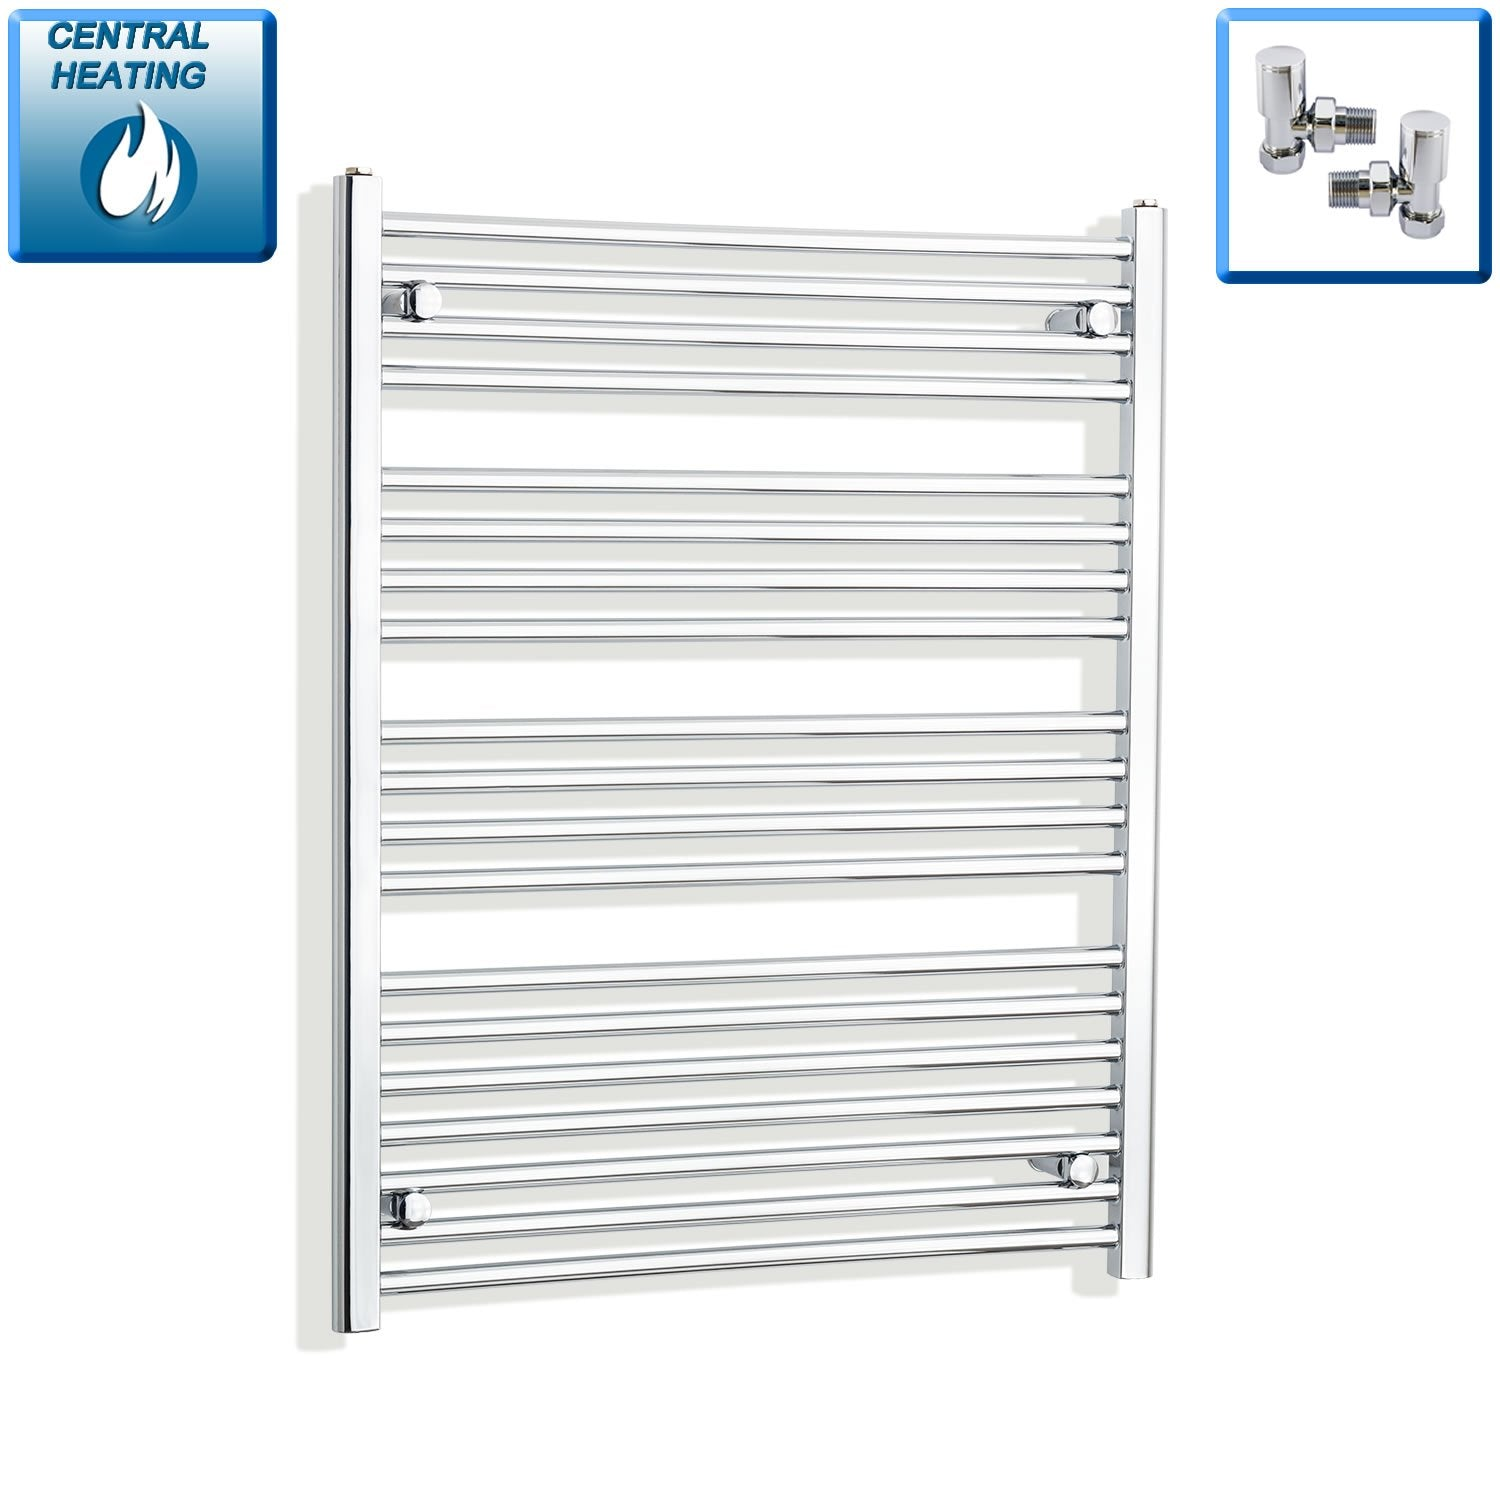 750mm Wide 1000mm High Curved Chrome Heated Towel Rail Radiator HTR,With Angled Valve